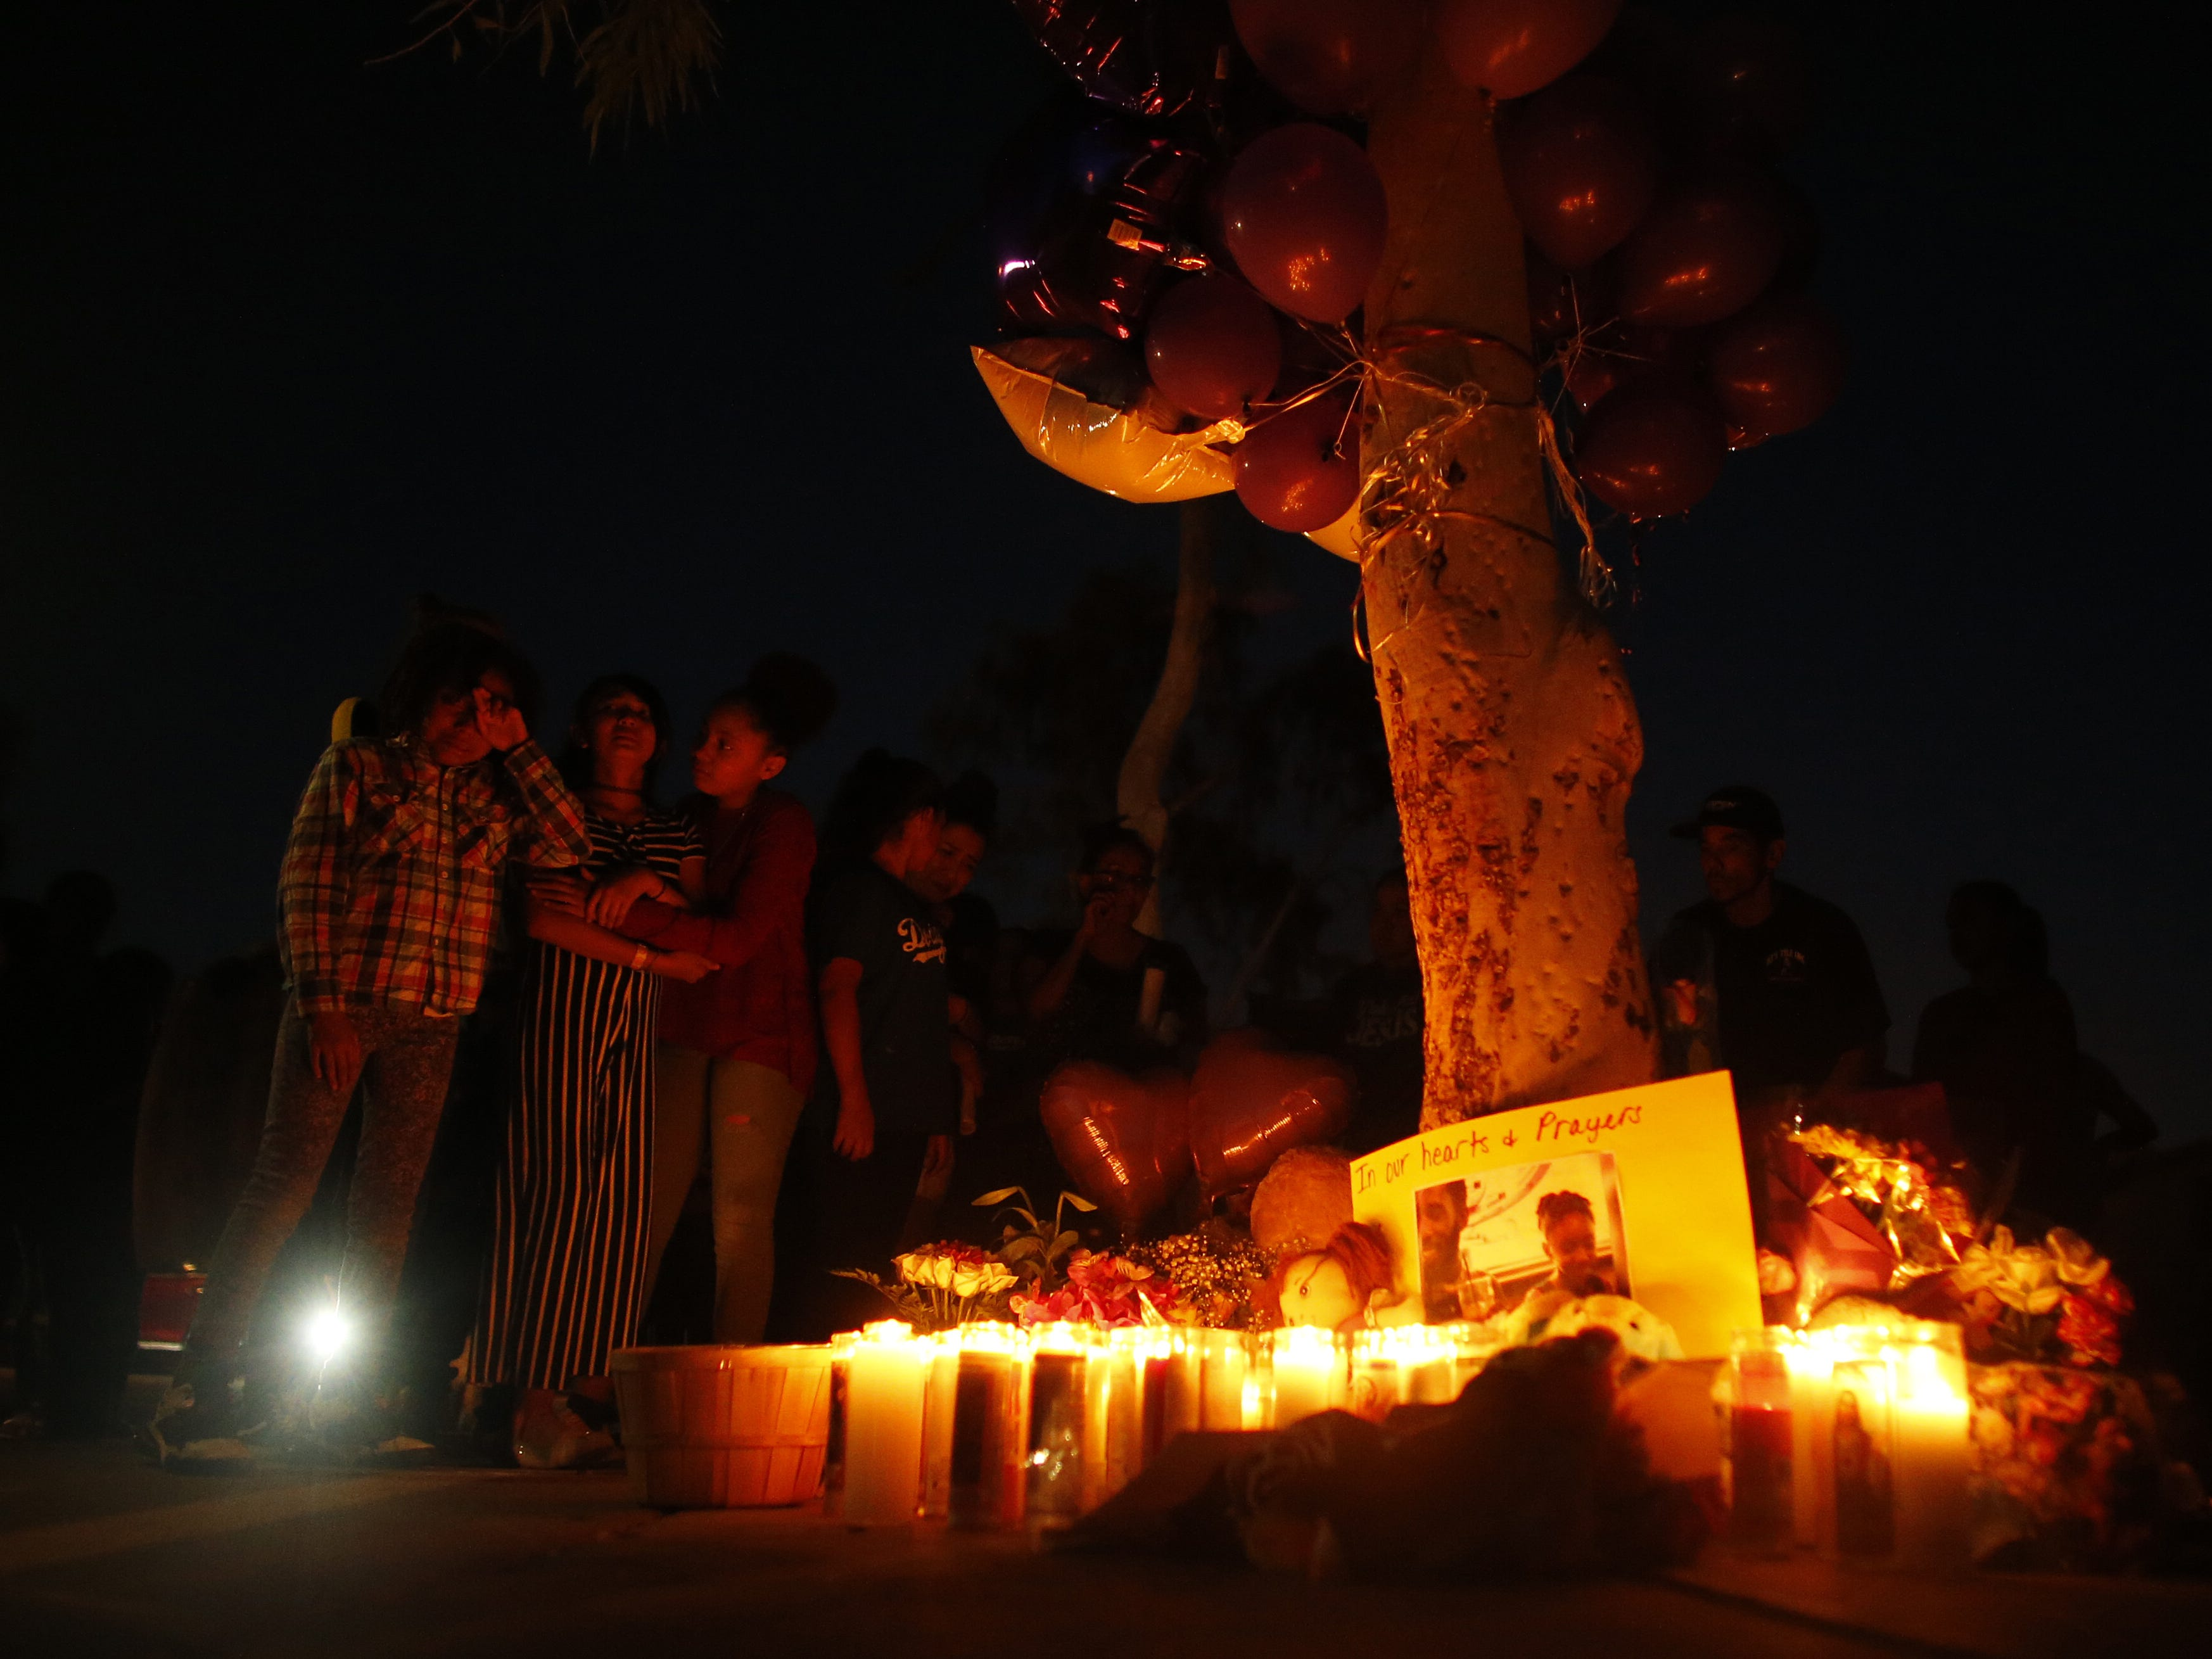 Jazlynn Boungert gets hugged by friends as they cry around the candlelight at a vigil for Summer Bell Brown on April 5, 2019, outside her home where she was shot and killed in Phoenix. Brown was 10 years old.